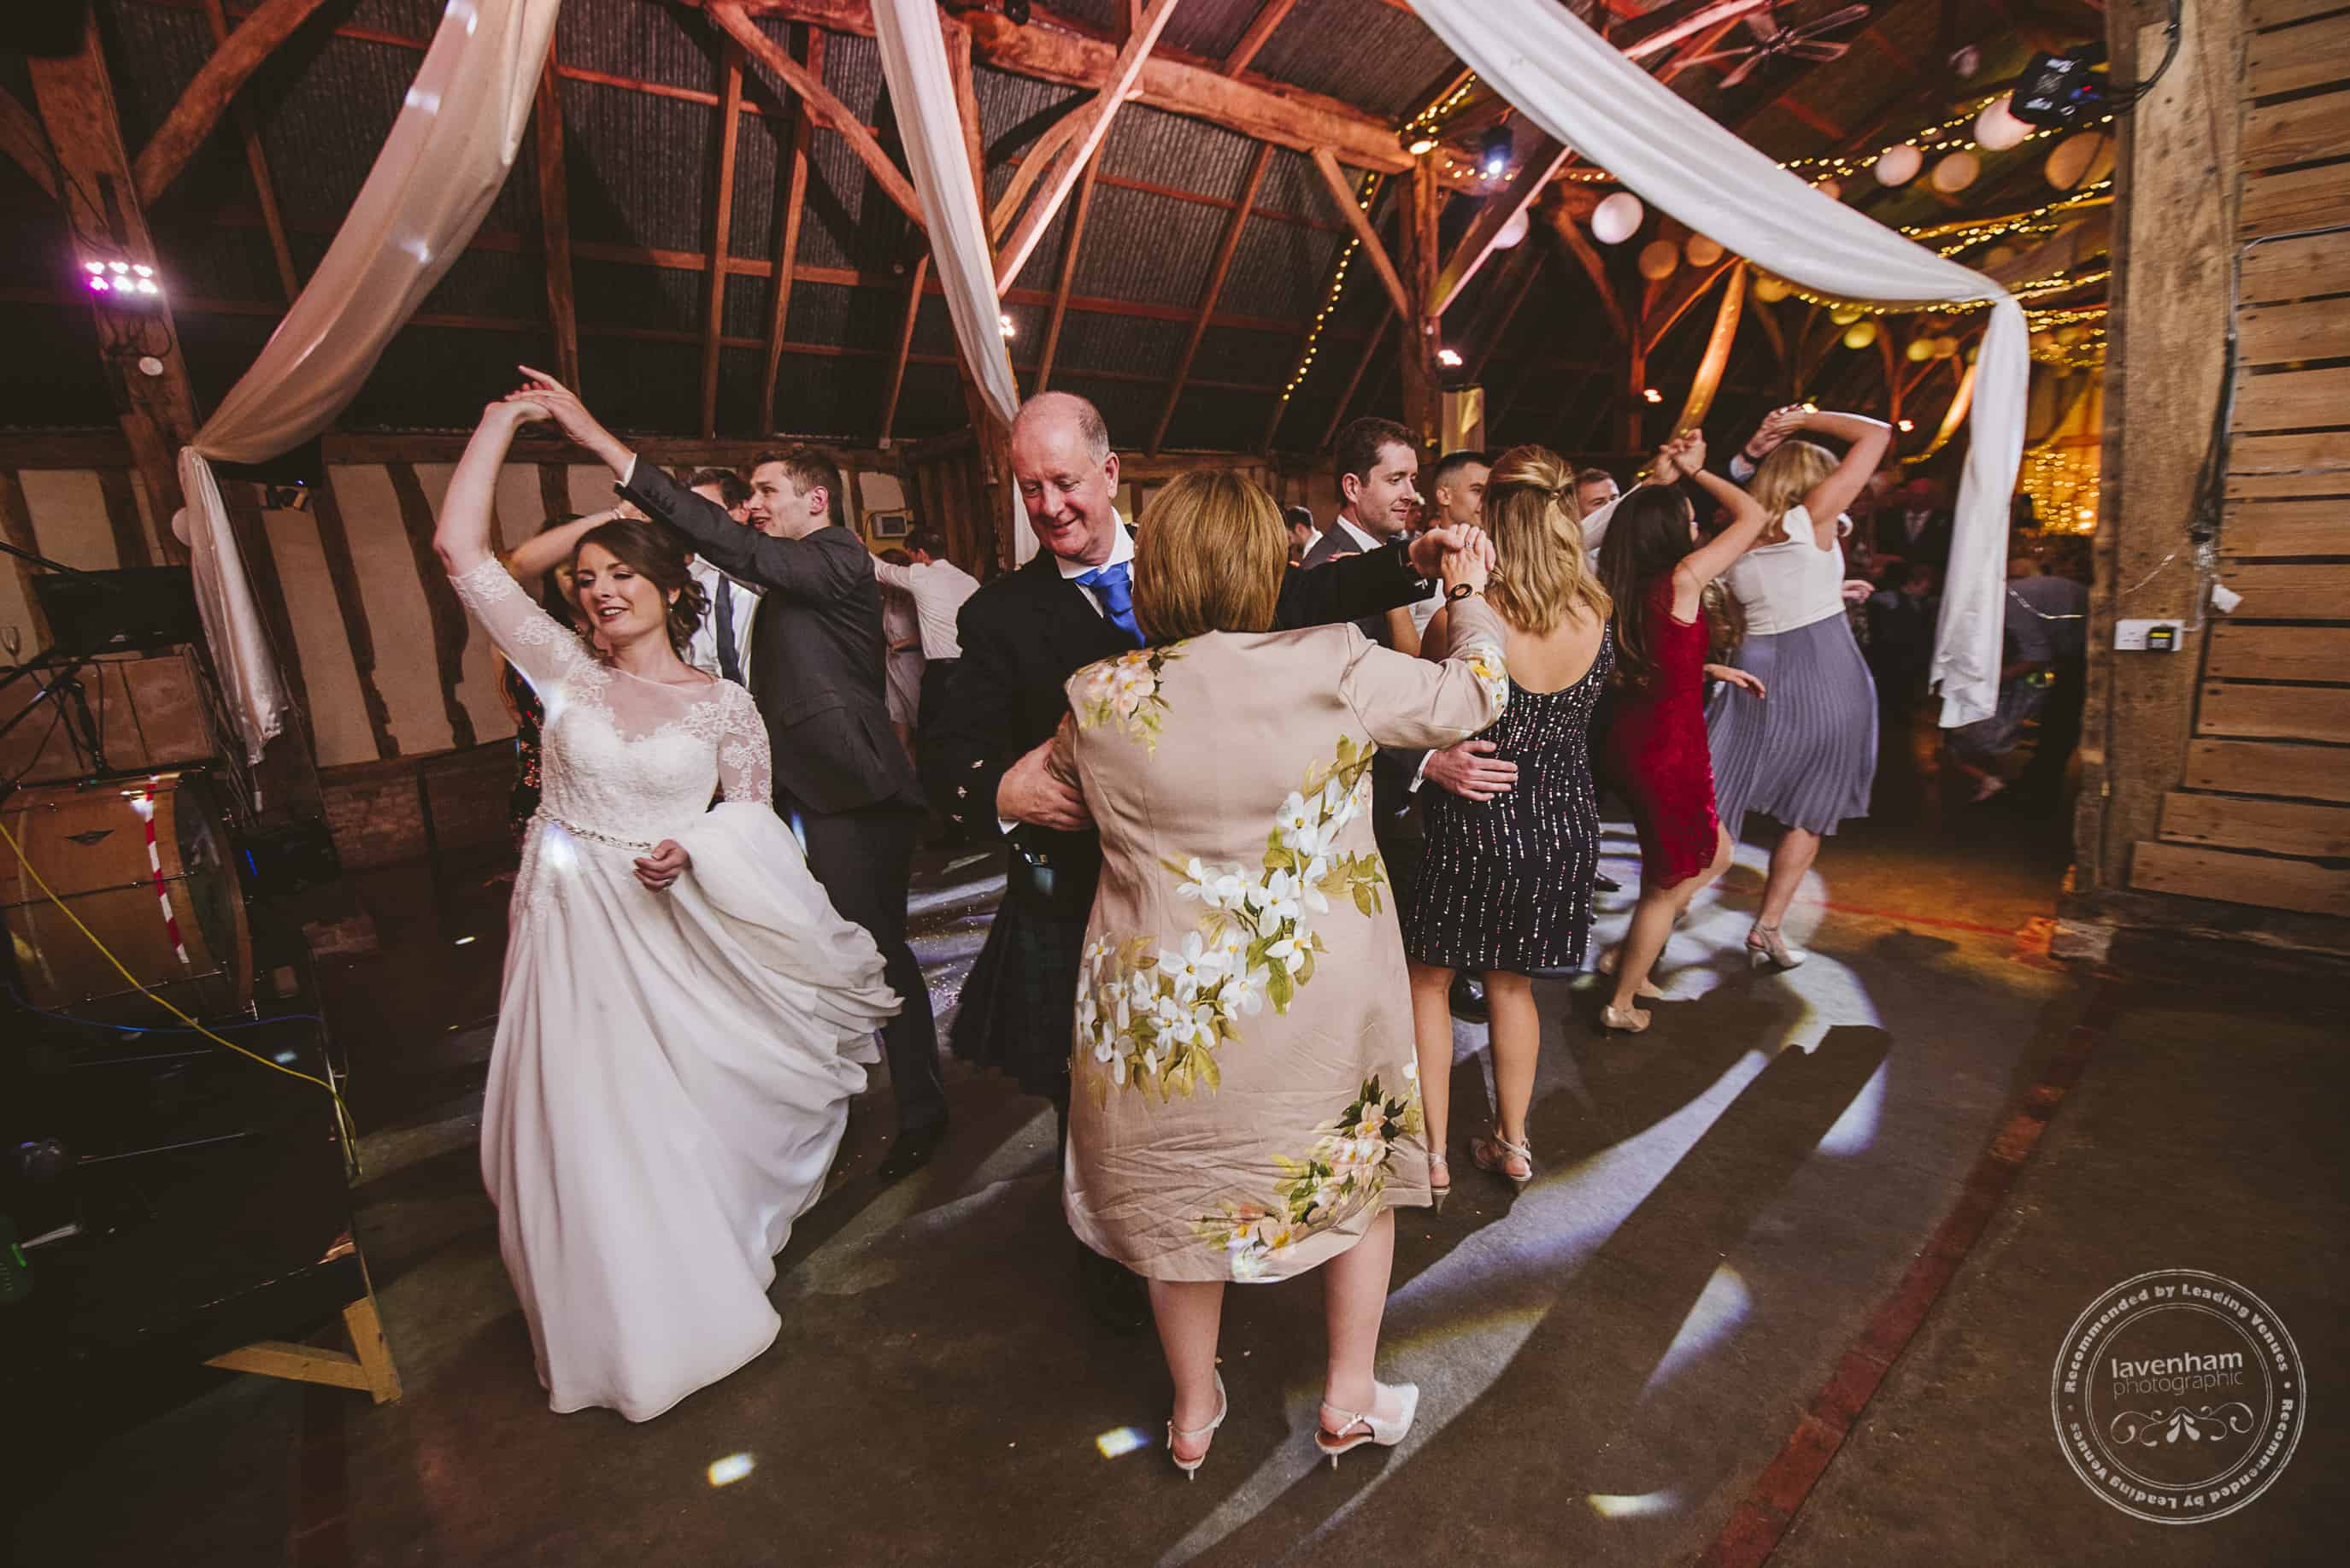 220918 Alpheton Barn Wedding Photography by Lavenham Photographic 145